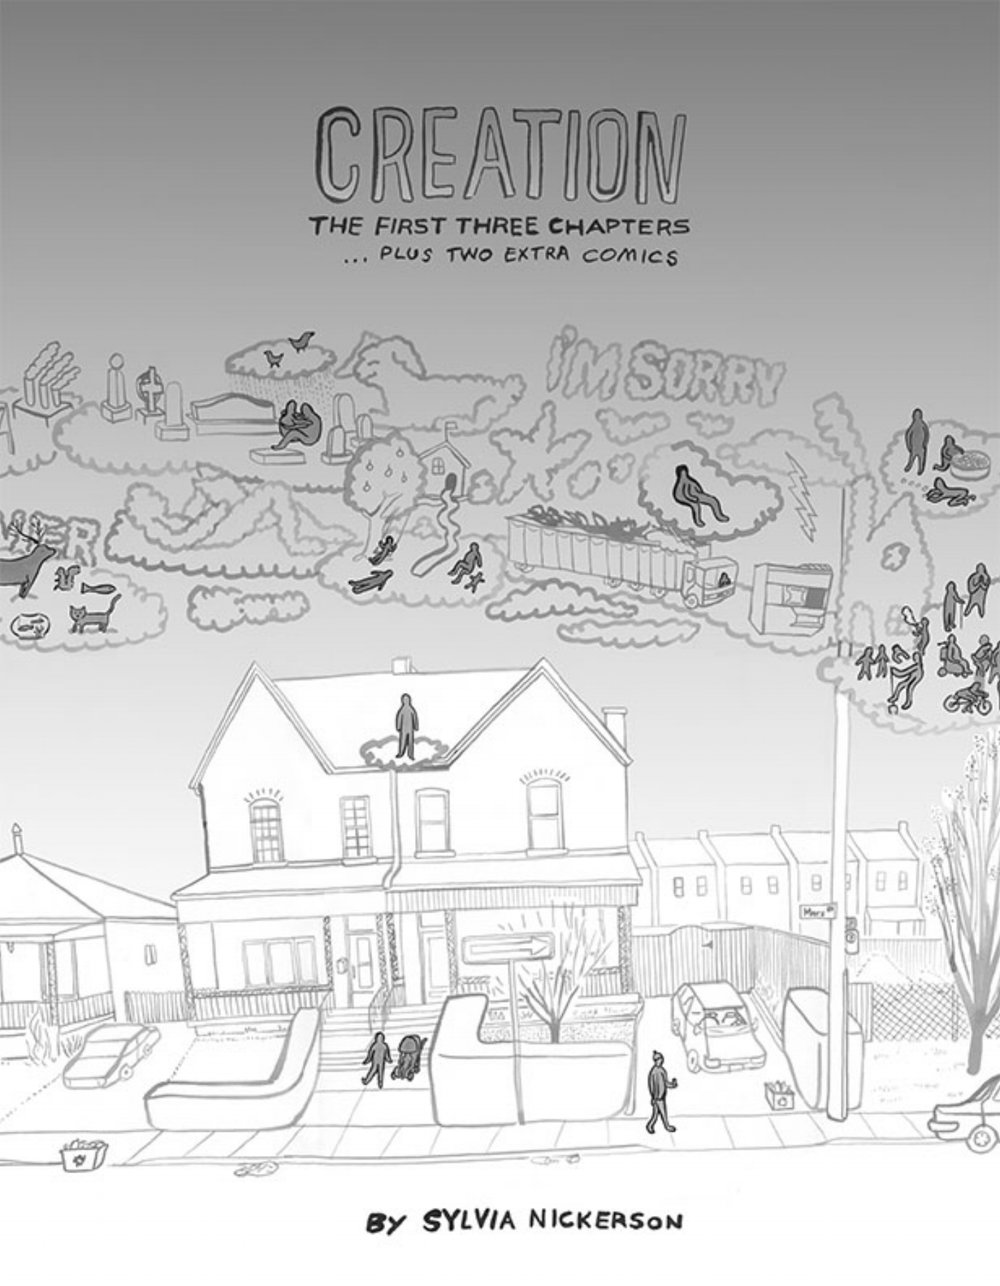 Sylvia Nickerson. Creation: The First Three Chapters Plus Two Extra Comics. sylvianickerson.ca. $25.00